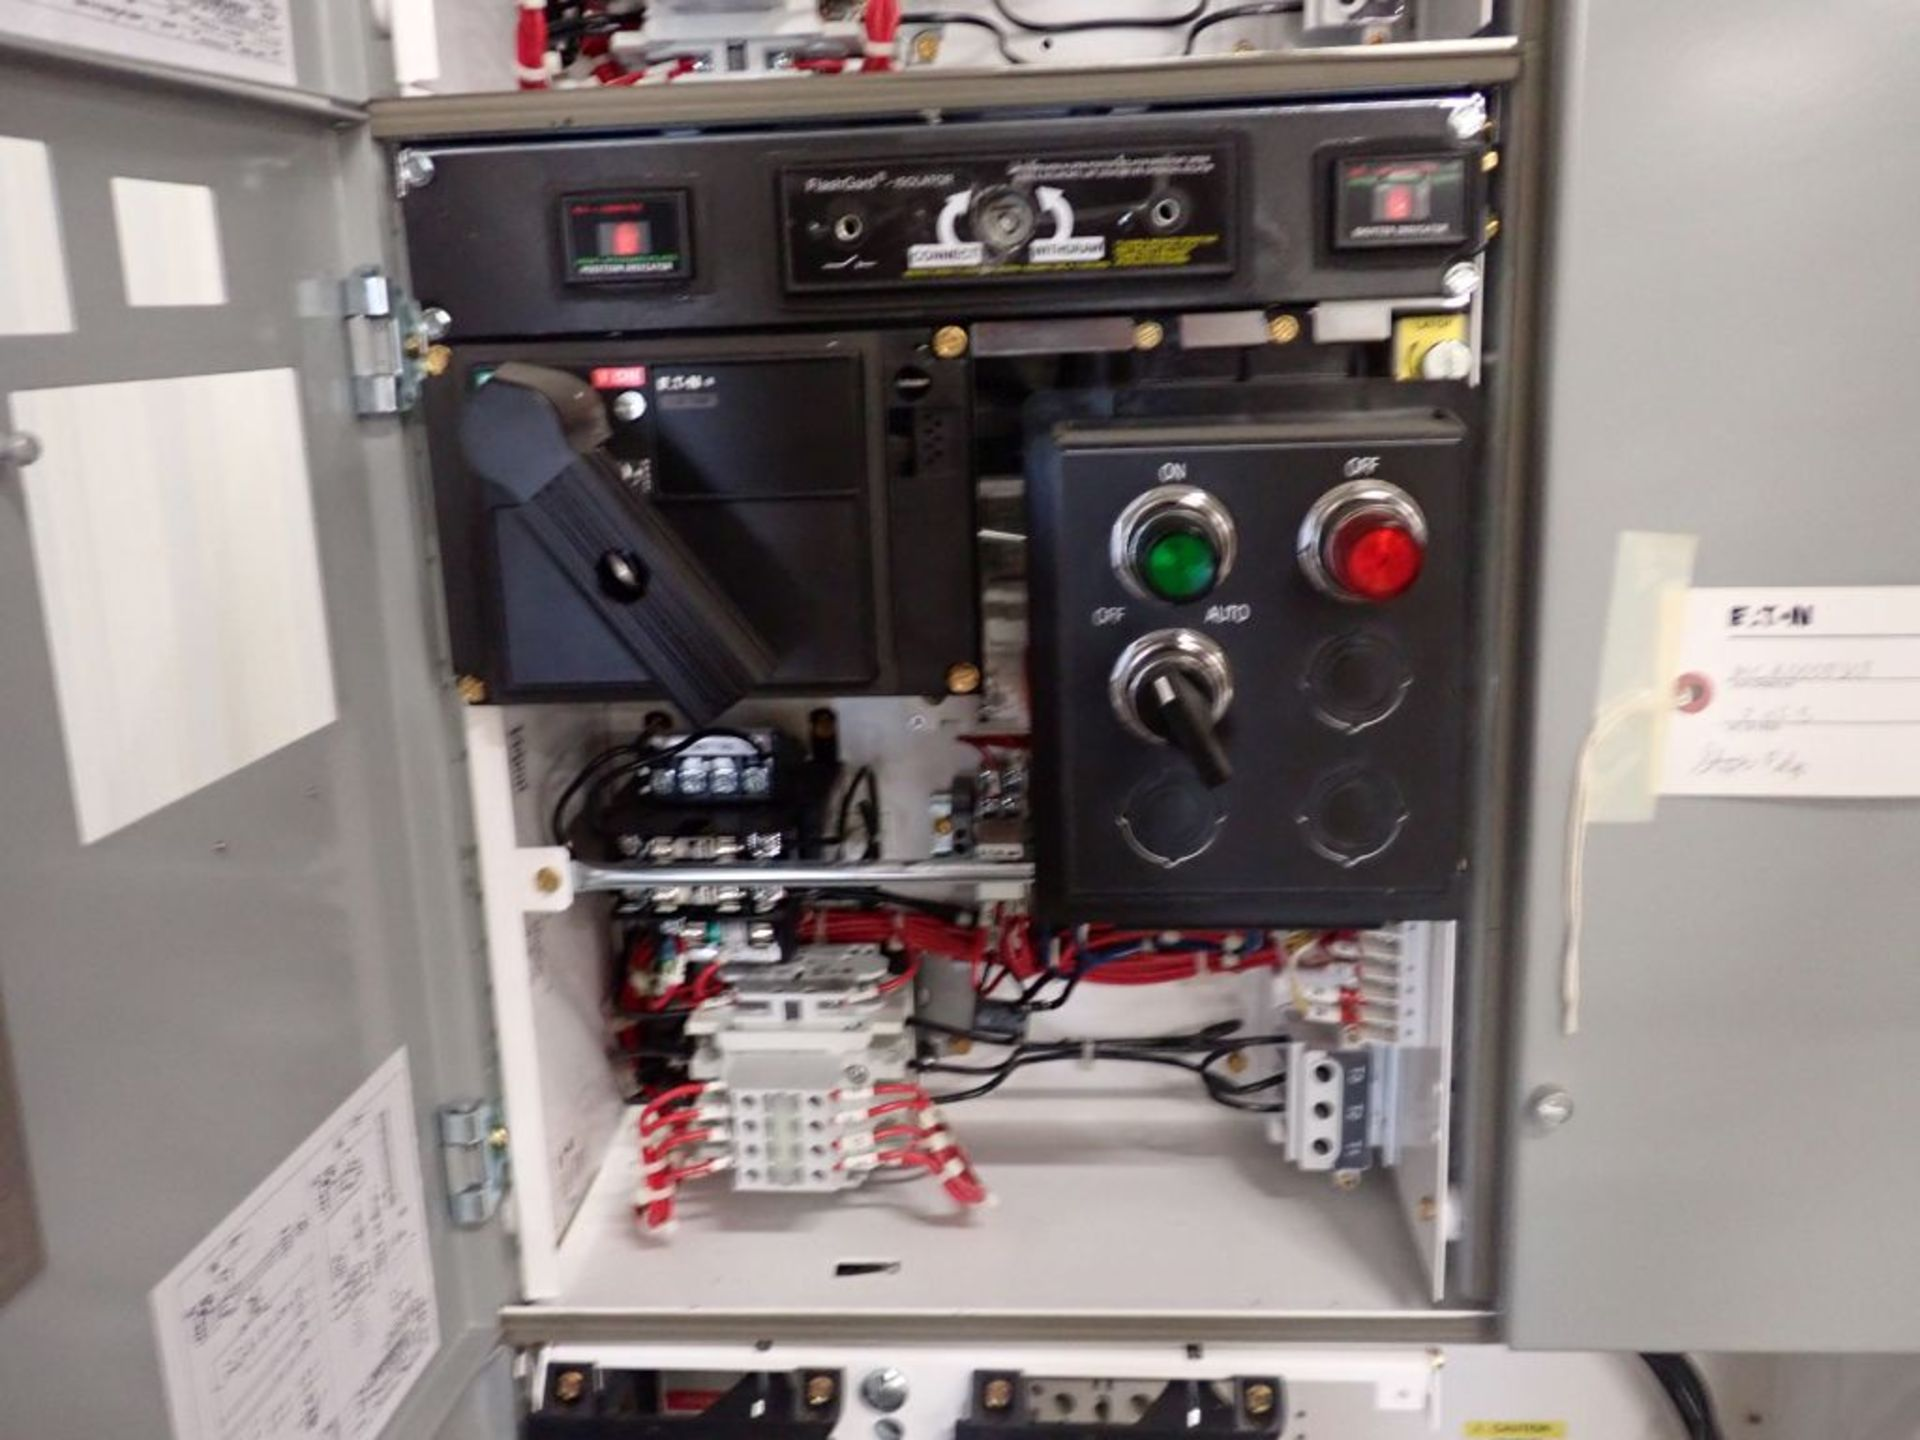 Eaton Freedom 2100 Series Motor Control Center | (2) F208-30A; (1) F208-40A; (1) FDRB-50A; (2) - Image 12 of 37